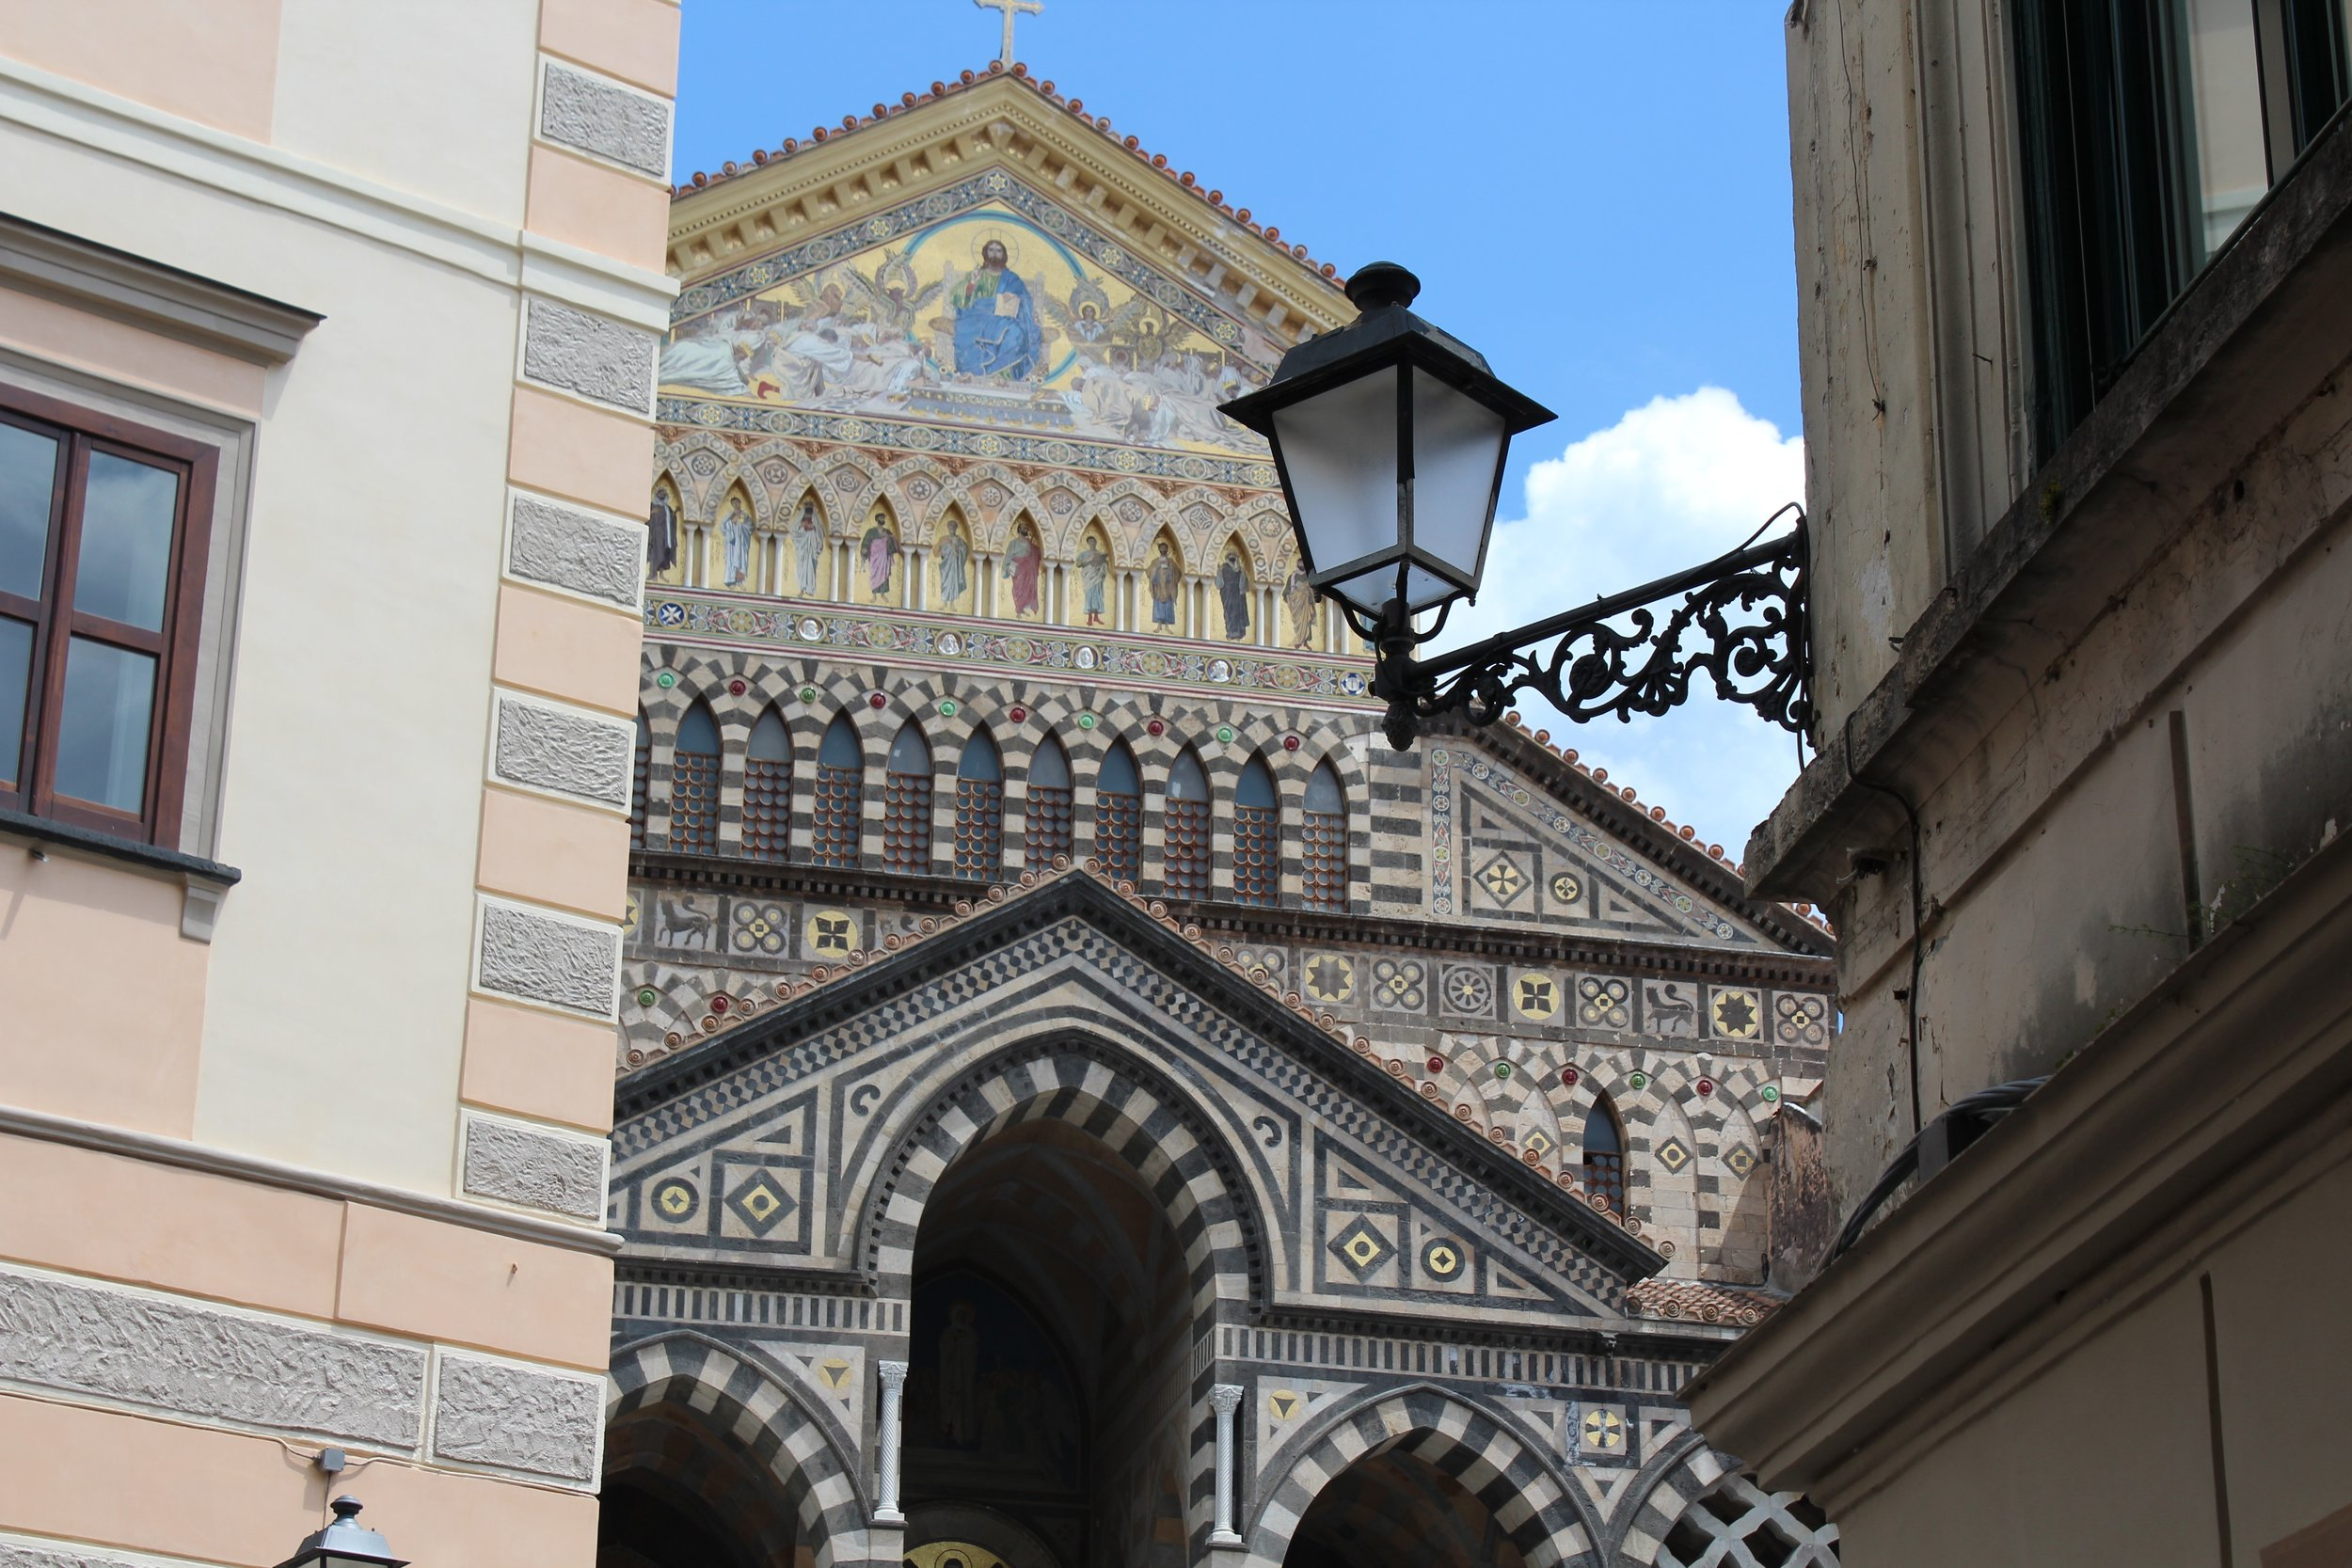 Andrea Pansa Pasticceria is next door to San Andrea, the Norman-Arab Cathedral of Amalfi.